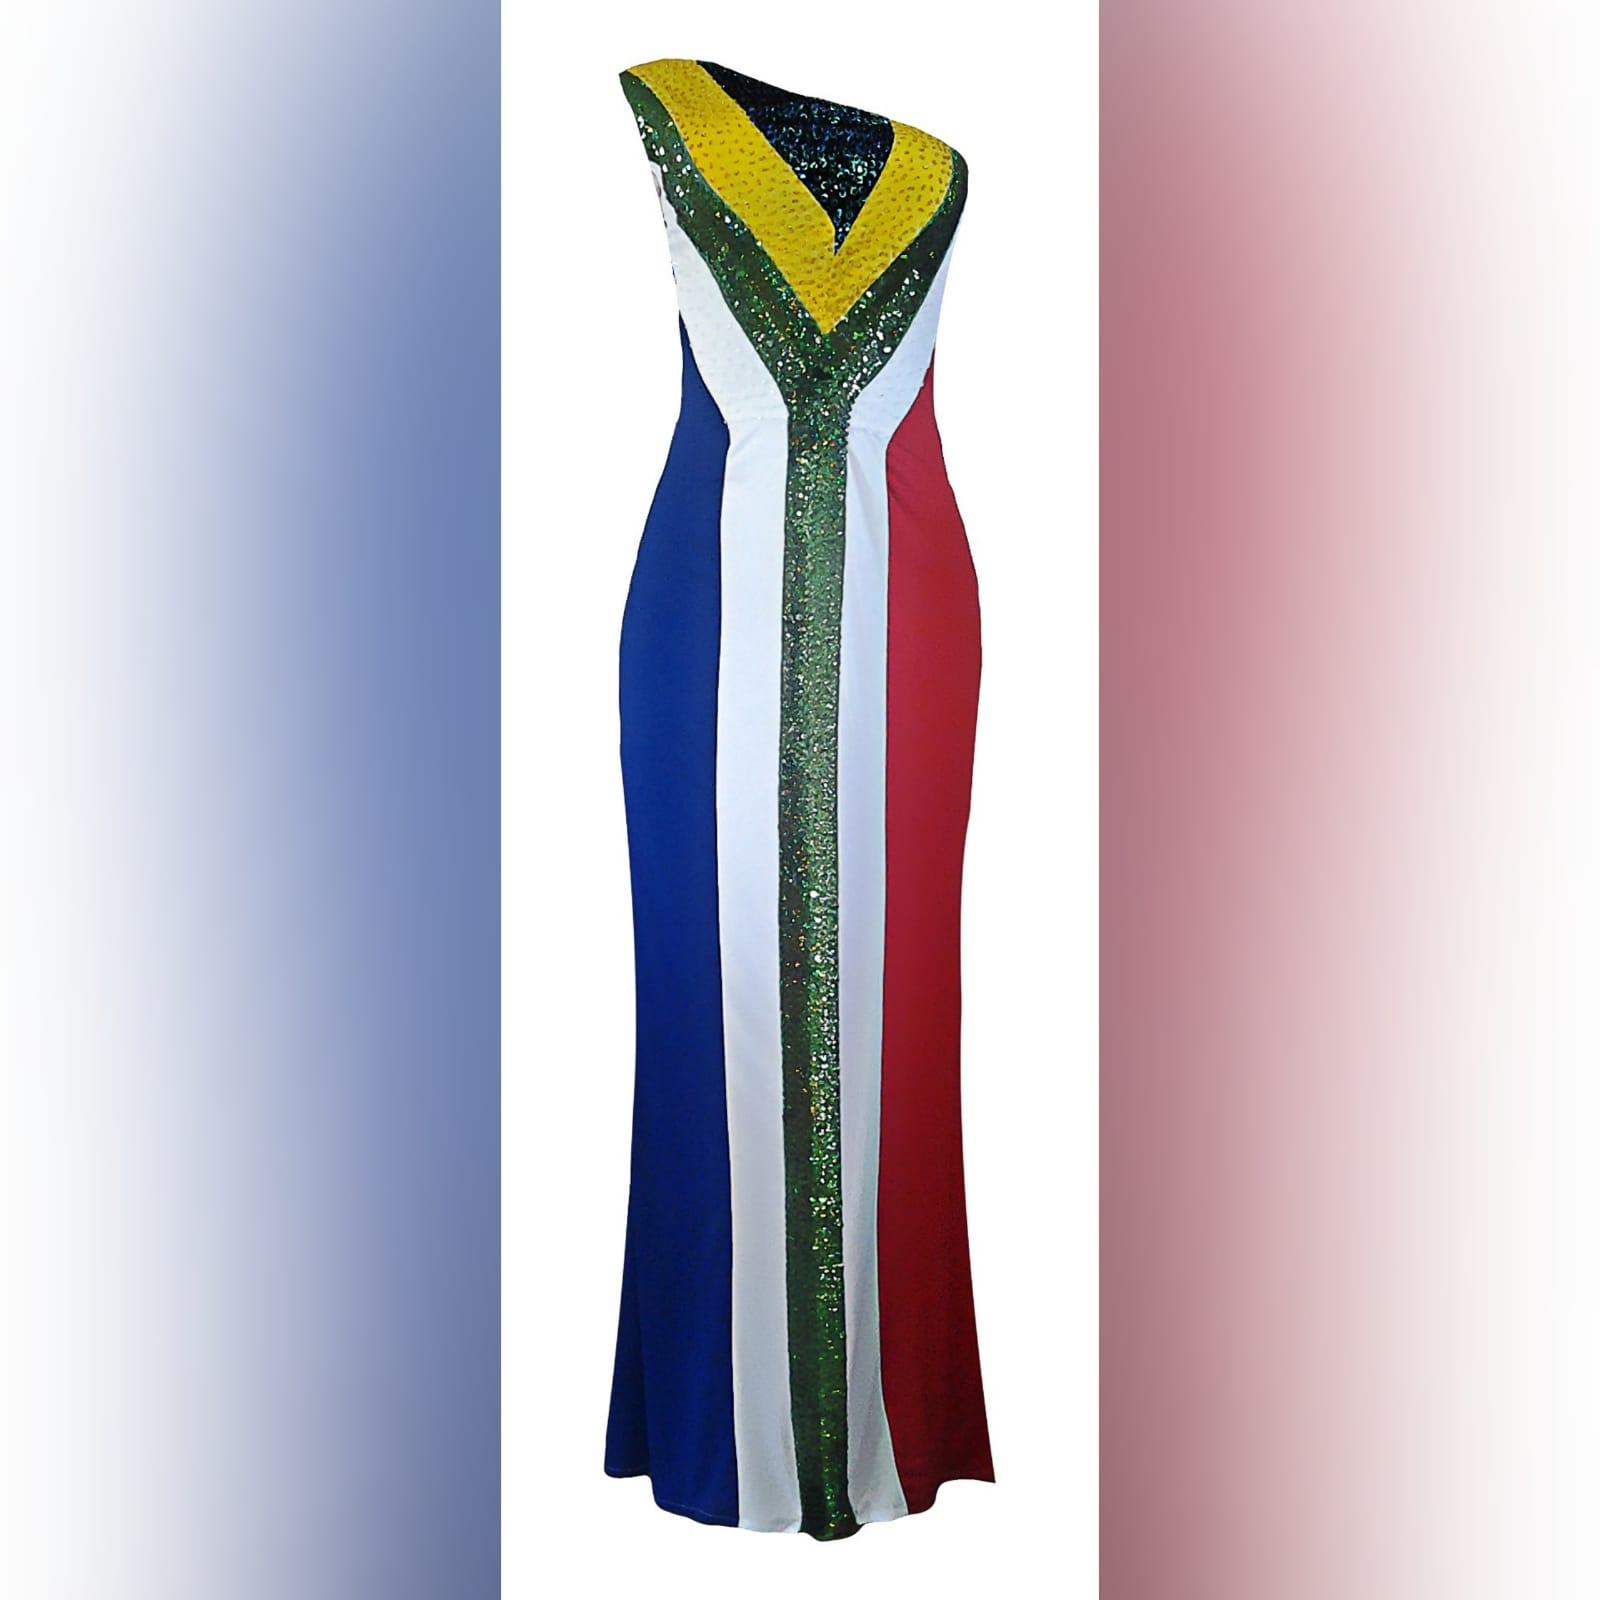 Single shoulder south african flag traditional dress 1 single shoulder south african flag traditional dress with the old flag faded design on the back and the new flag design in front with sequins and bead detail.